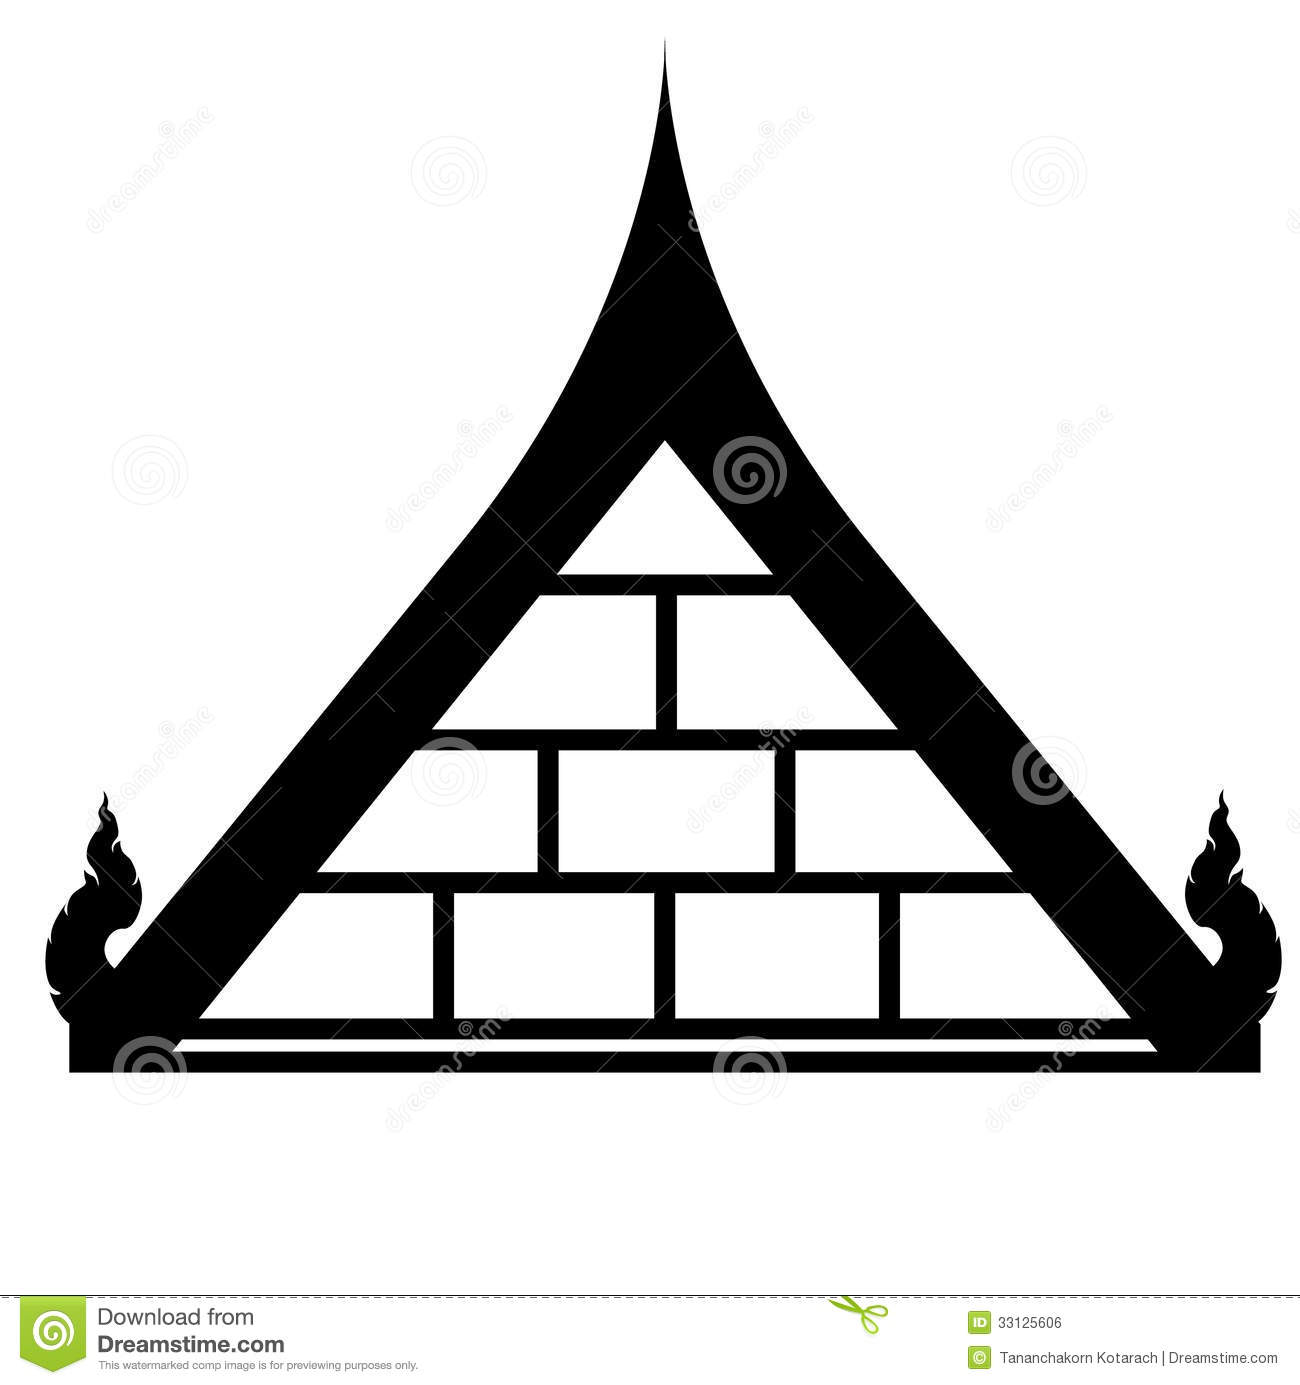 Thai roof design.we can see it on thai house or temple.